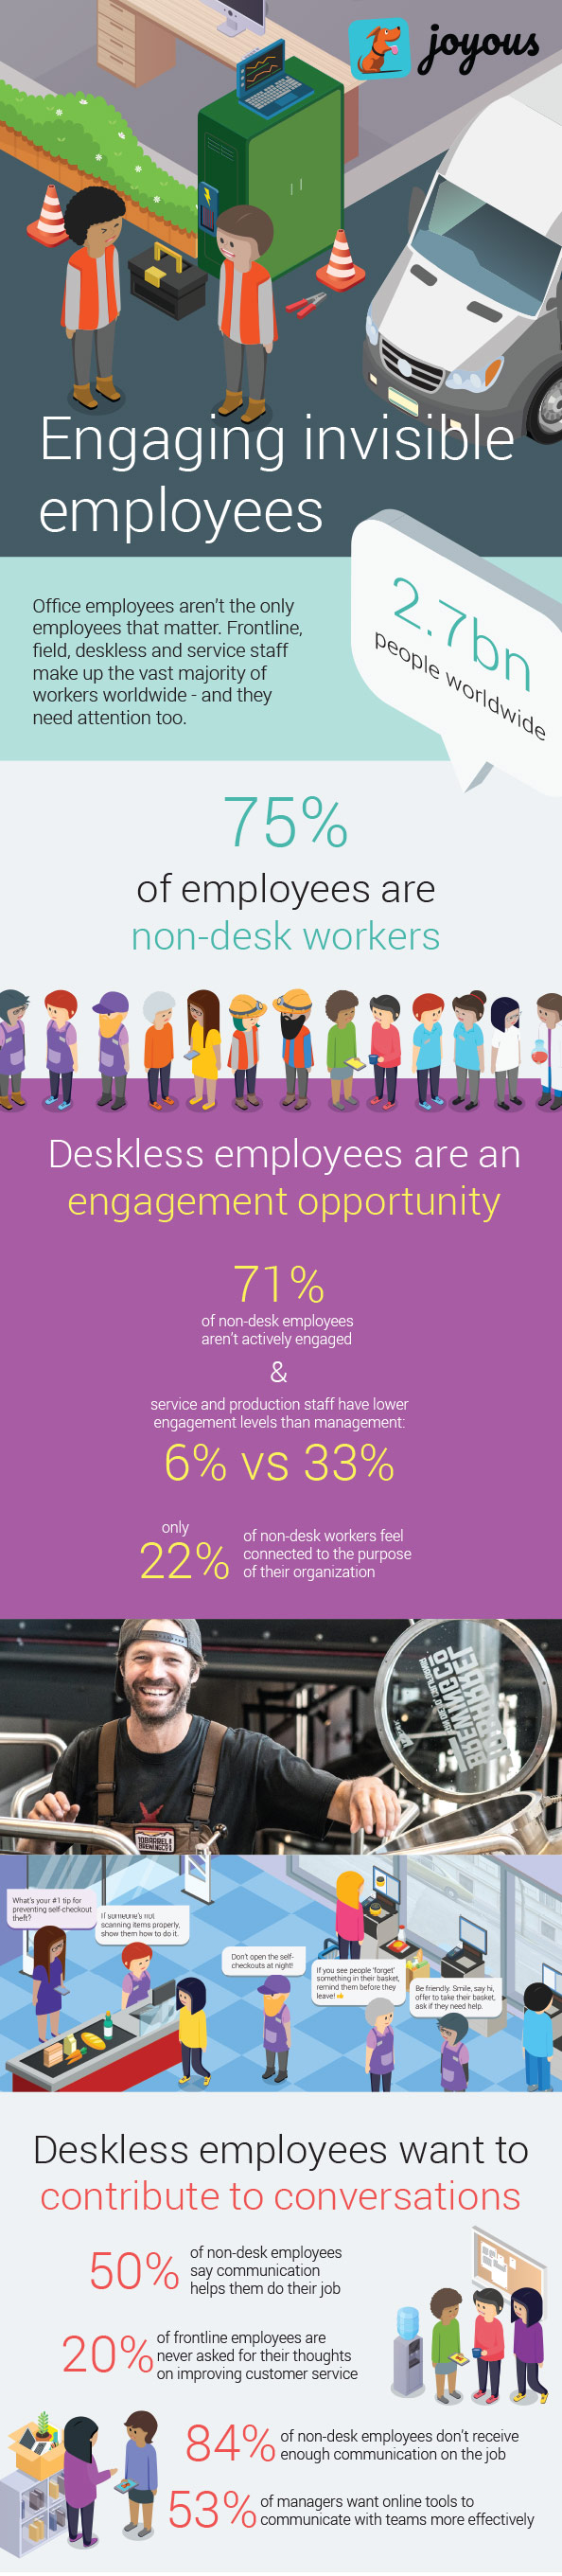 75% of all employees are non-desk employees